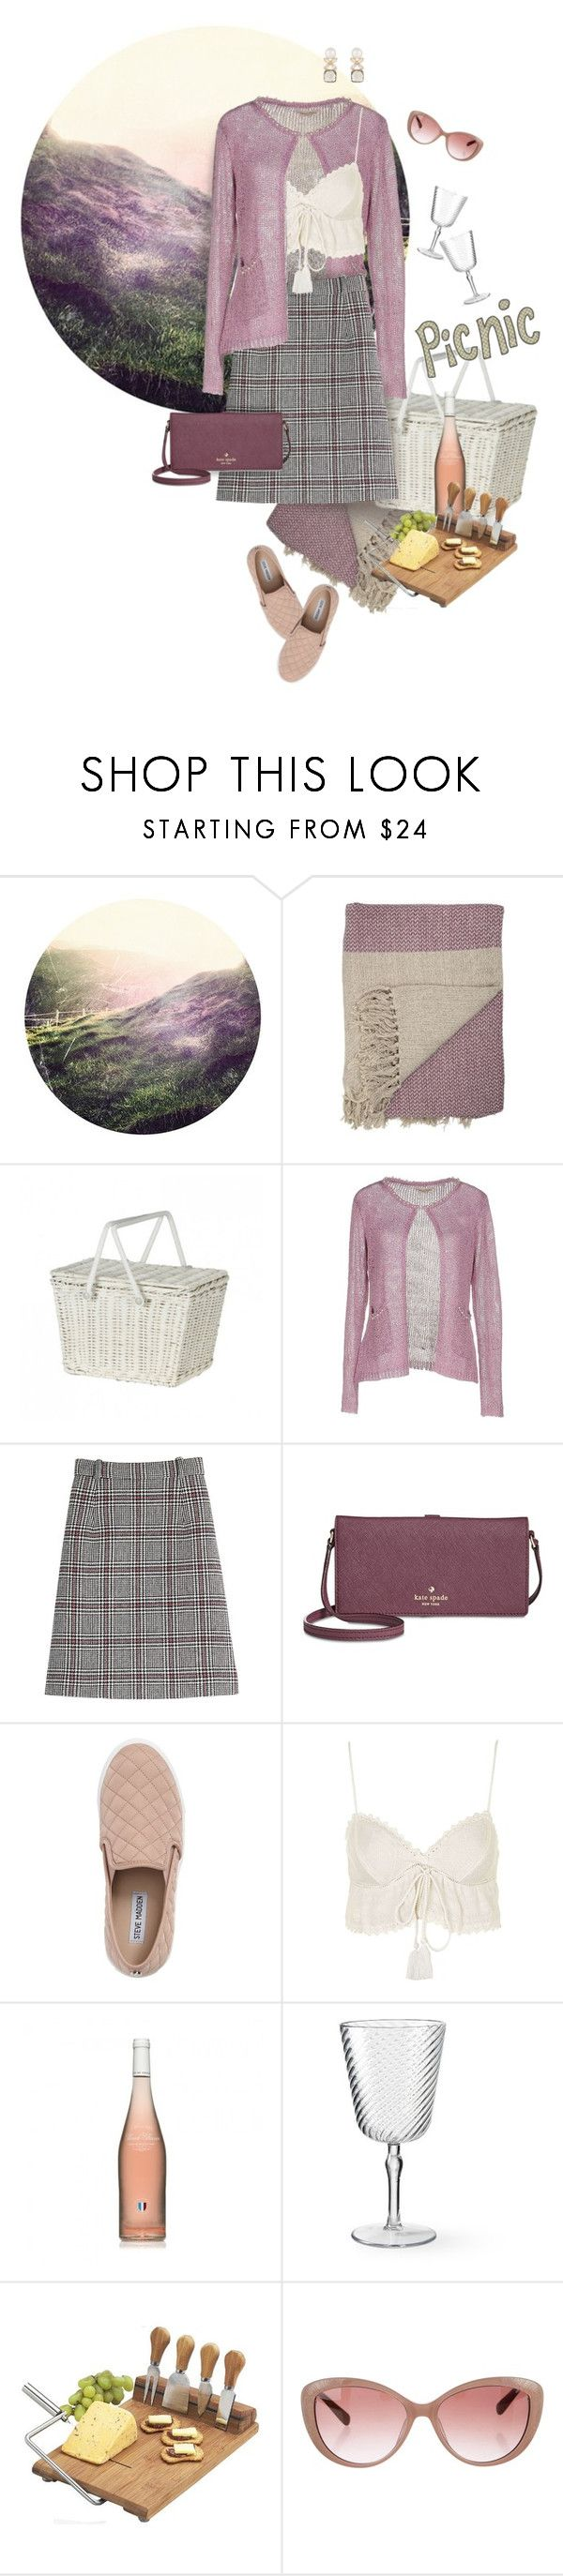 """Heather Hills Picnic"" by valeria-meira ❤ liked on Polyvore featuring Olli Ella, Cashmere Company, Carven, Kate Spade, Steve Madden, Topshop, Williams-Sonoma, Picnic at Ascot, Valentino and Atelier Mon"